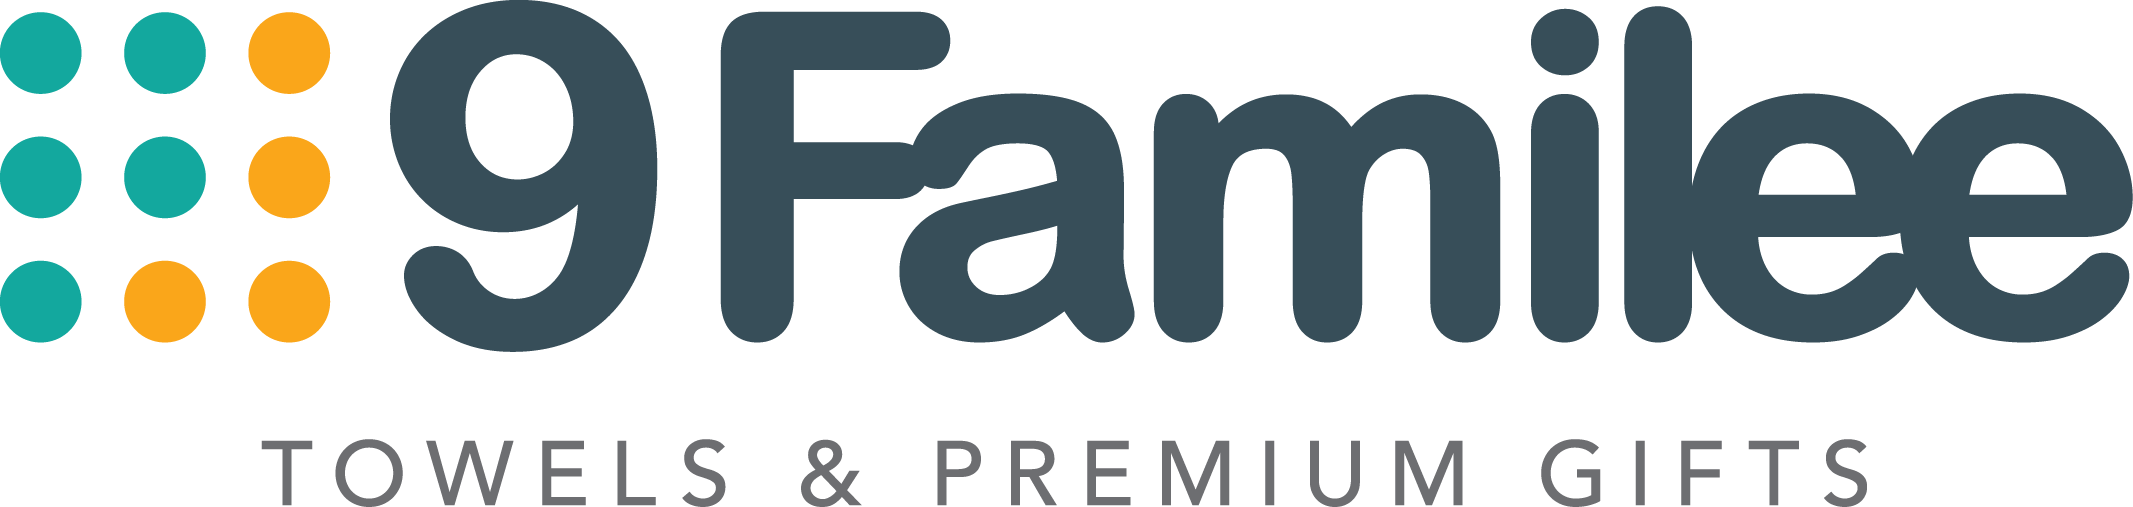 9 Familee Towels & Premium Gifts